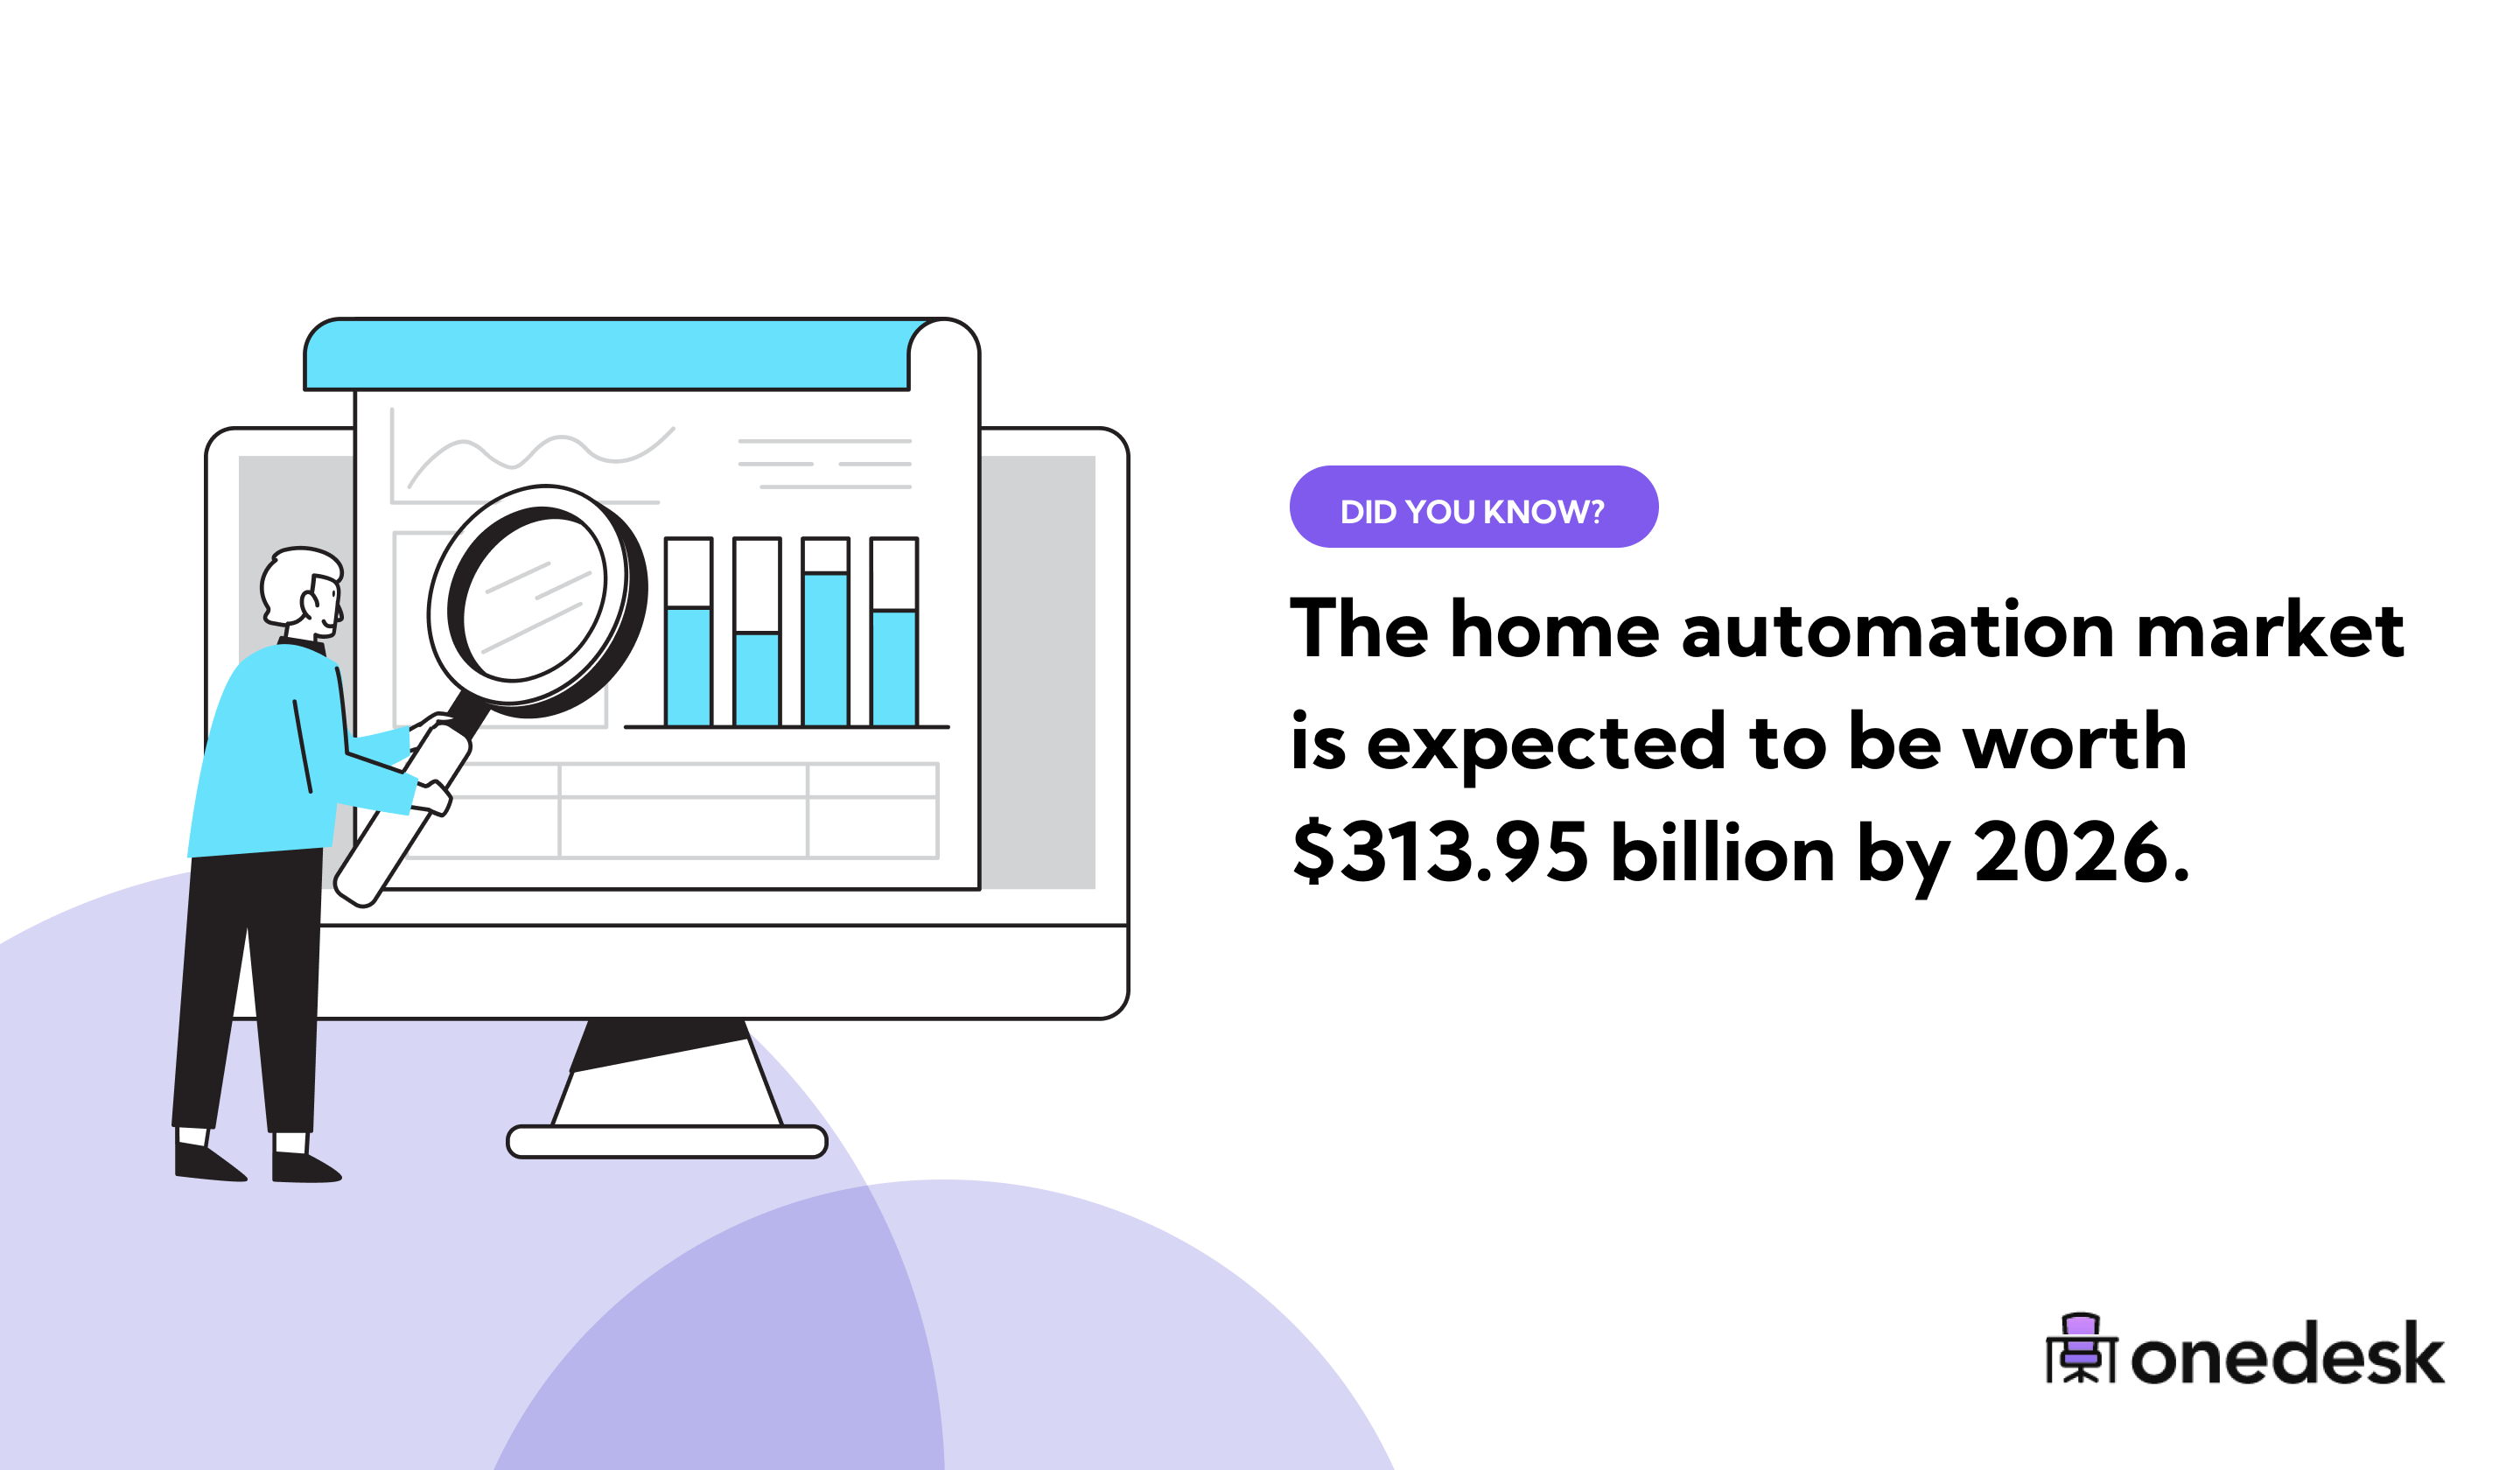 home automation market size by 2026